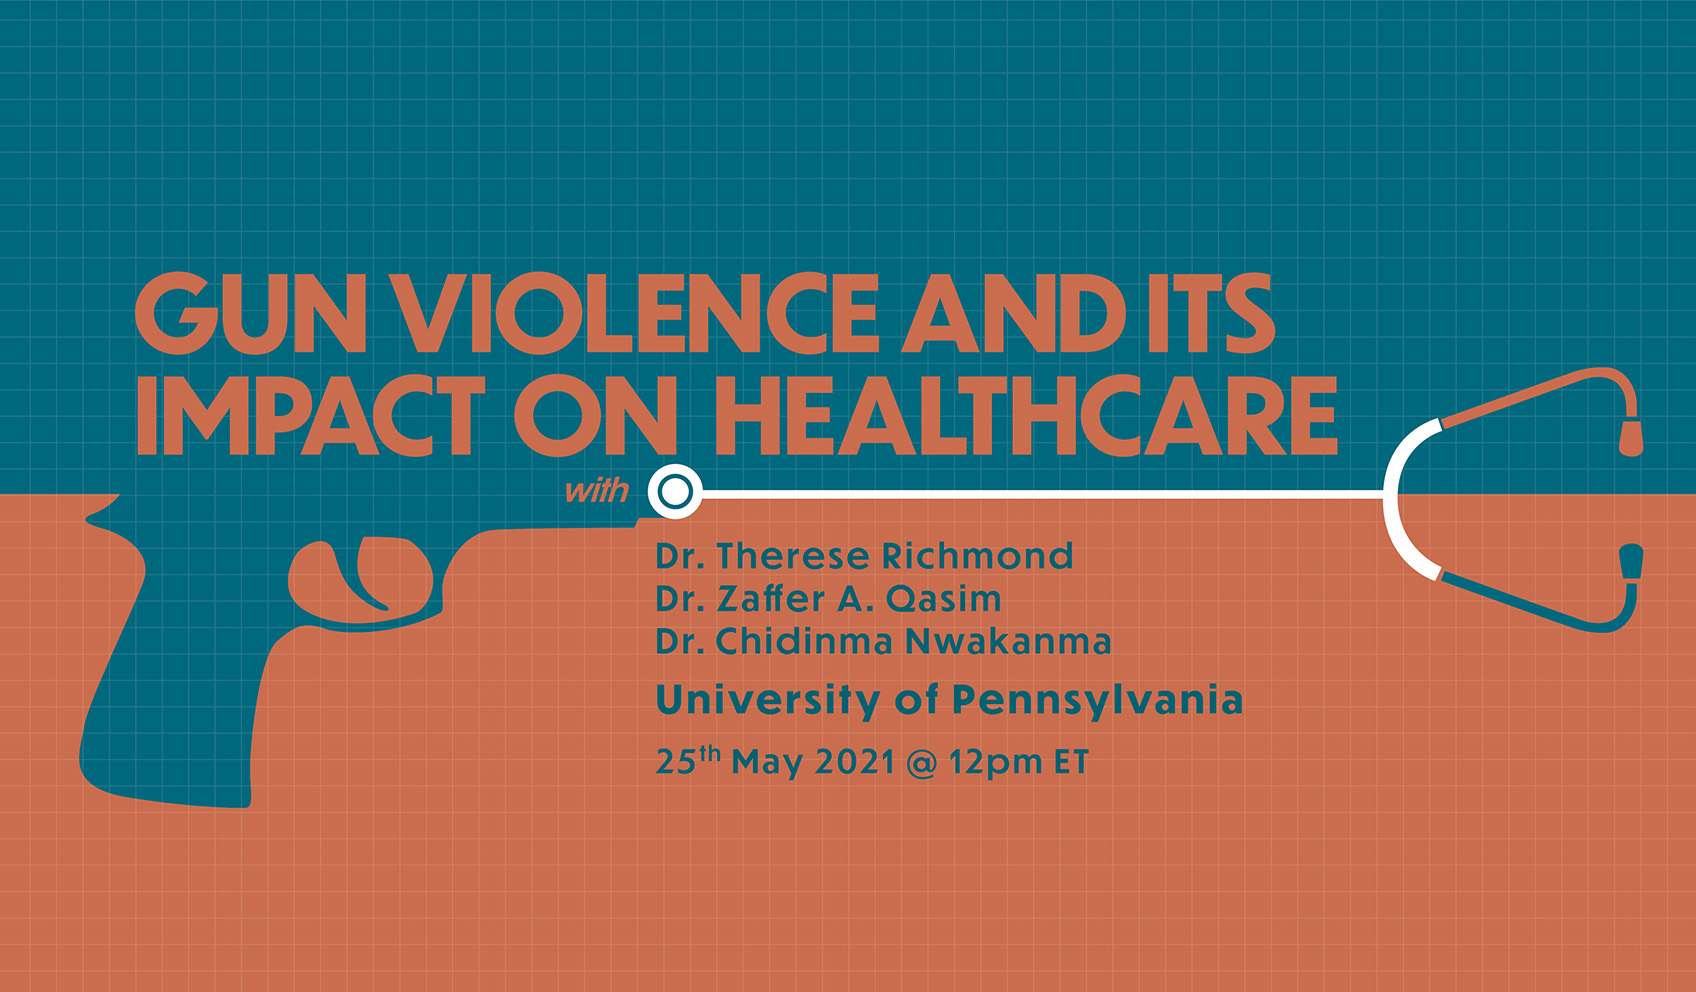 Gun Violence and its Impact on Healthcare